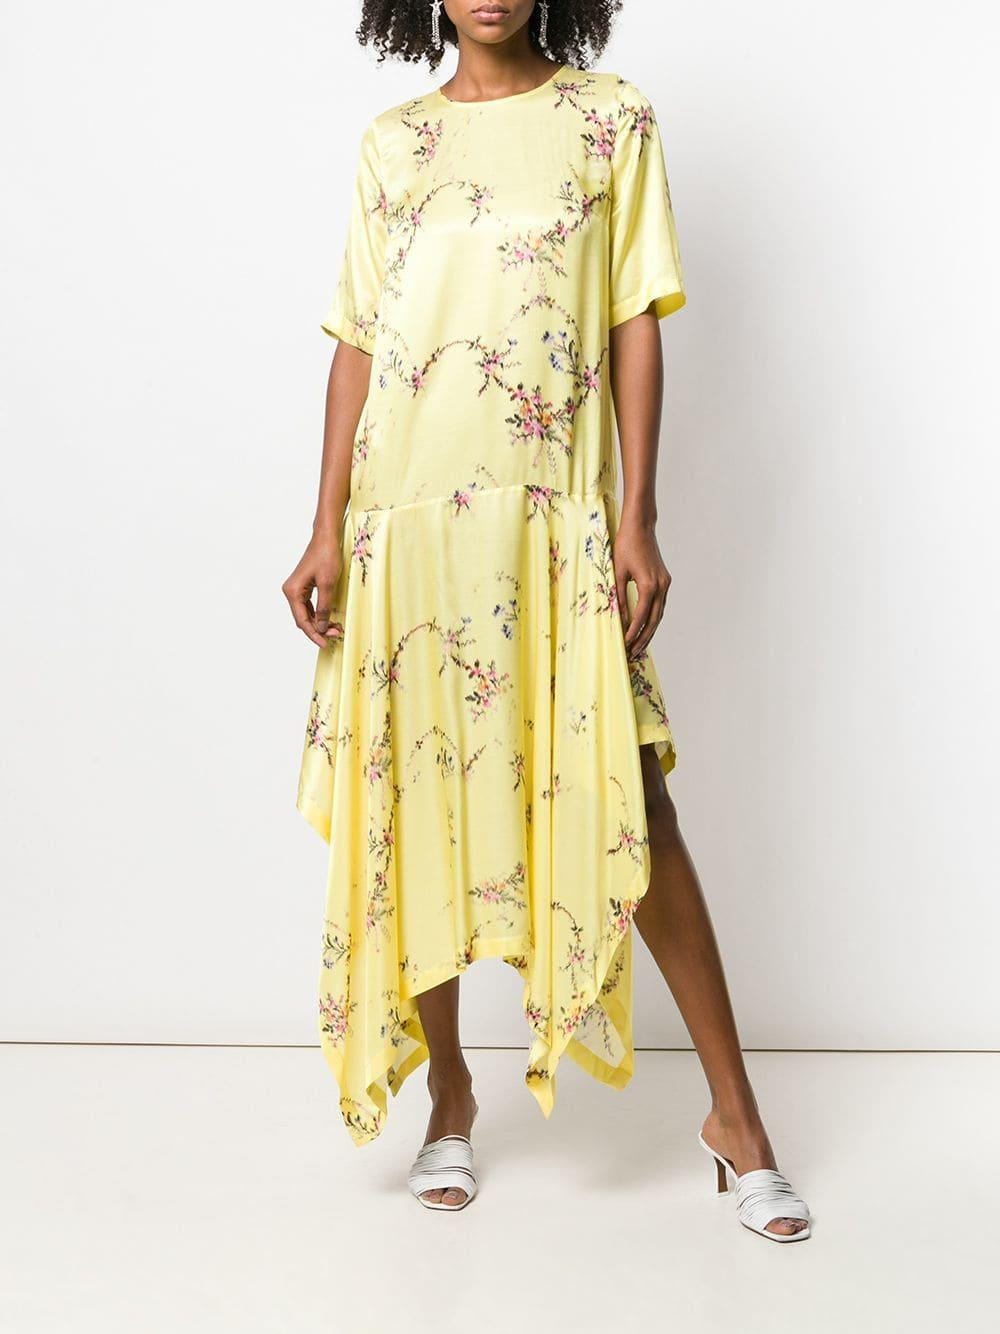 preen-by-thornton-bregazzi-yellow-Asymmetric-Maxi-Dress